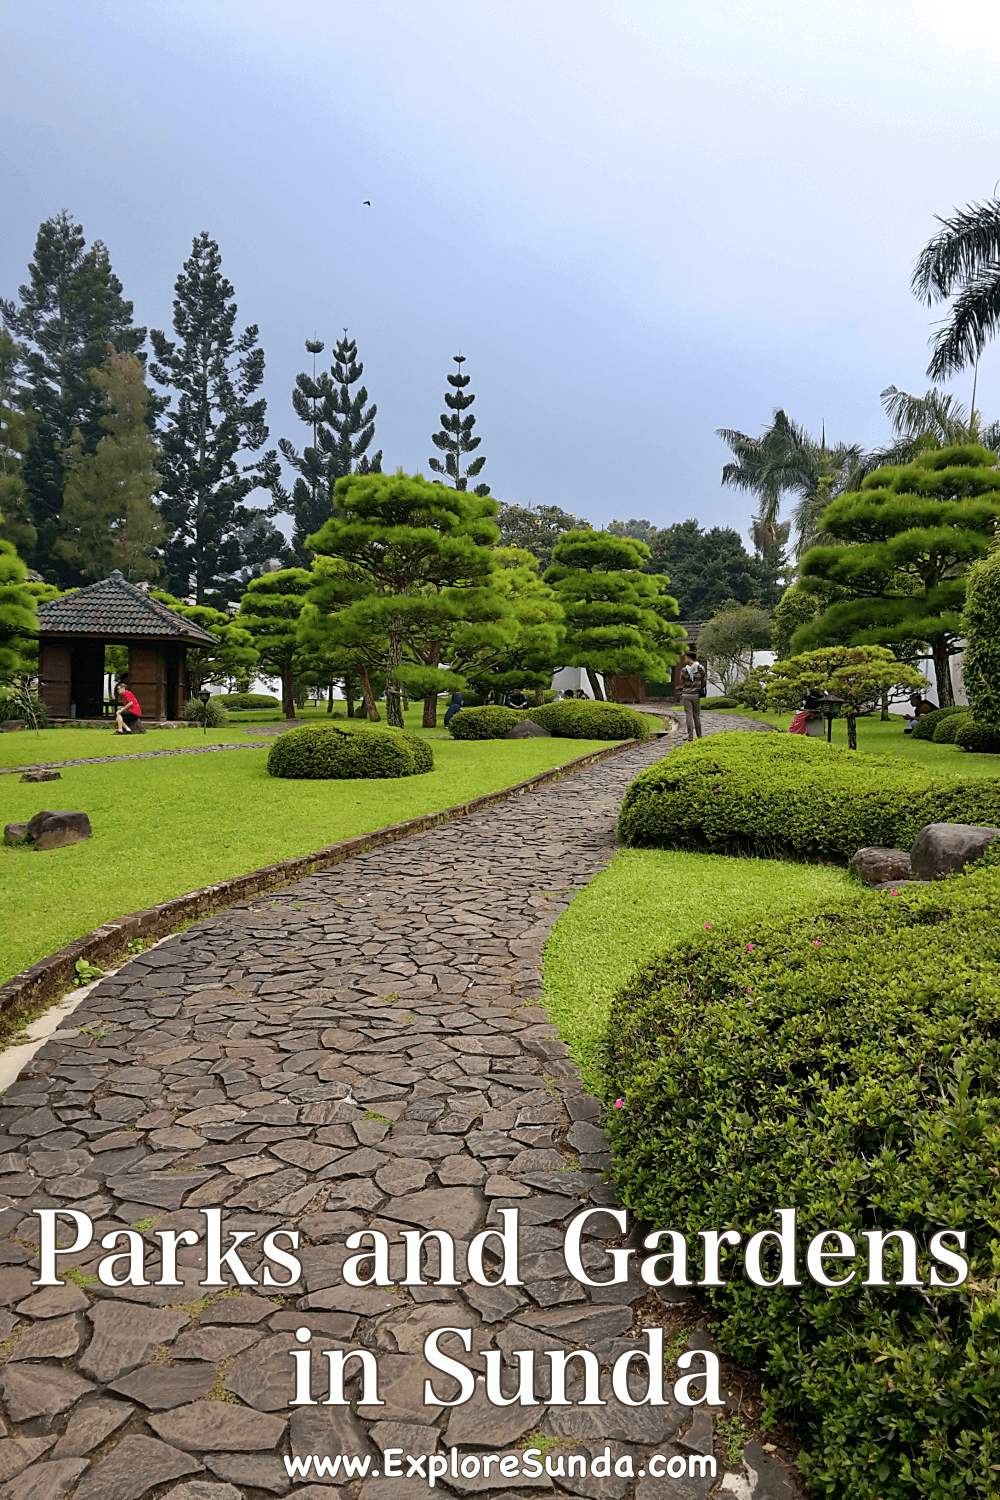 Explore beautiful Parks and Gardens in the land of Sunda | #ExploreSunda